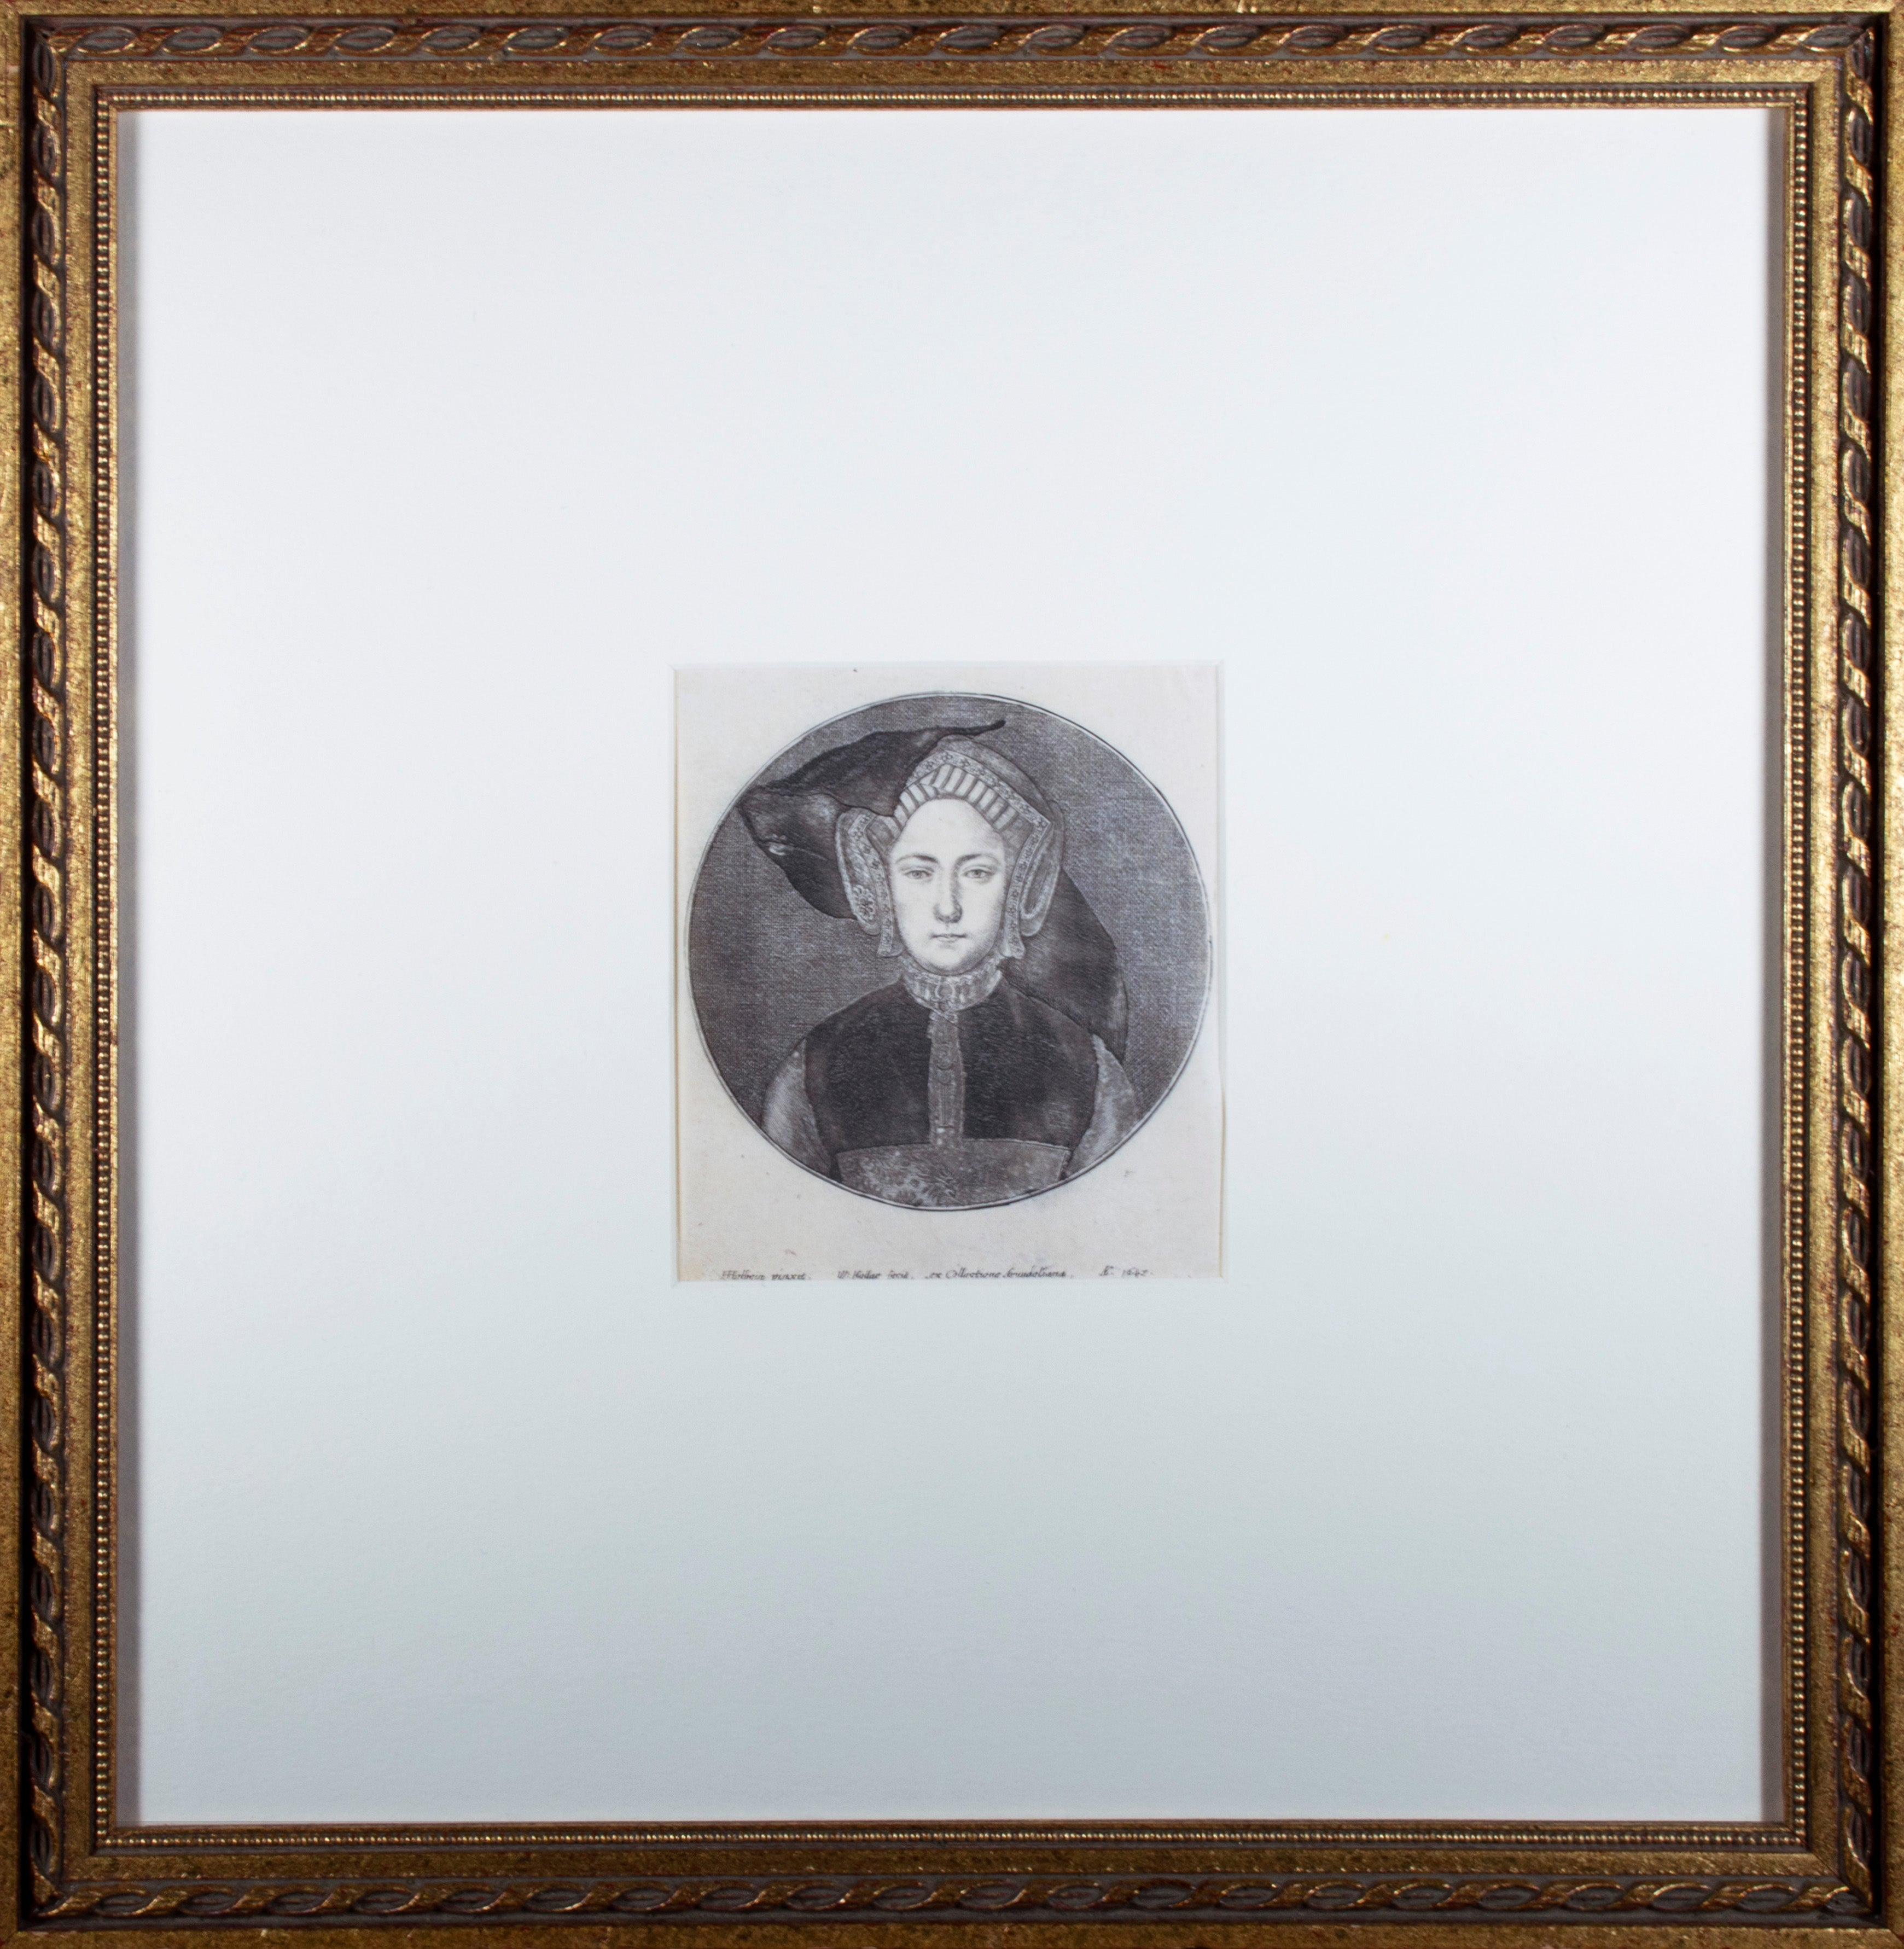 'Portrait of a Young Woman' original Hollar engraving after Hans Holbein